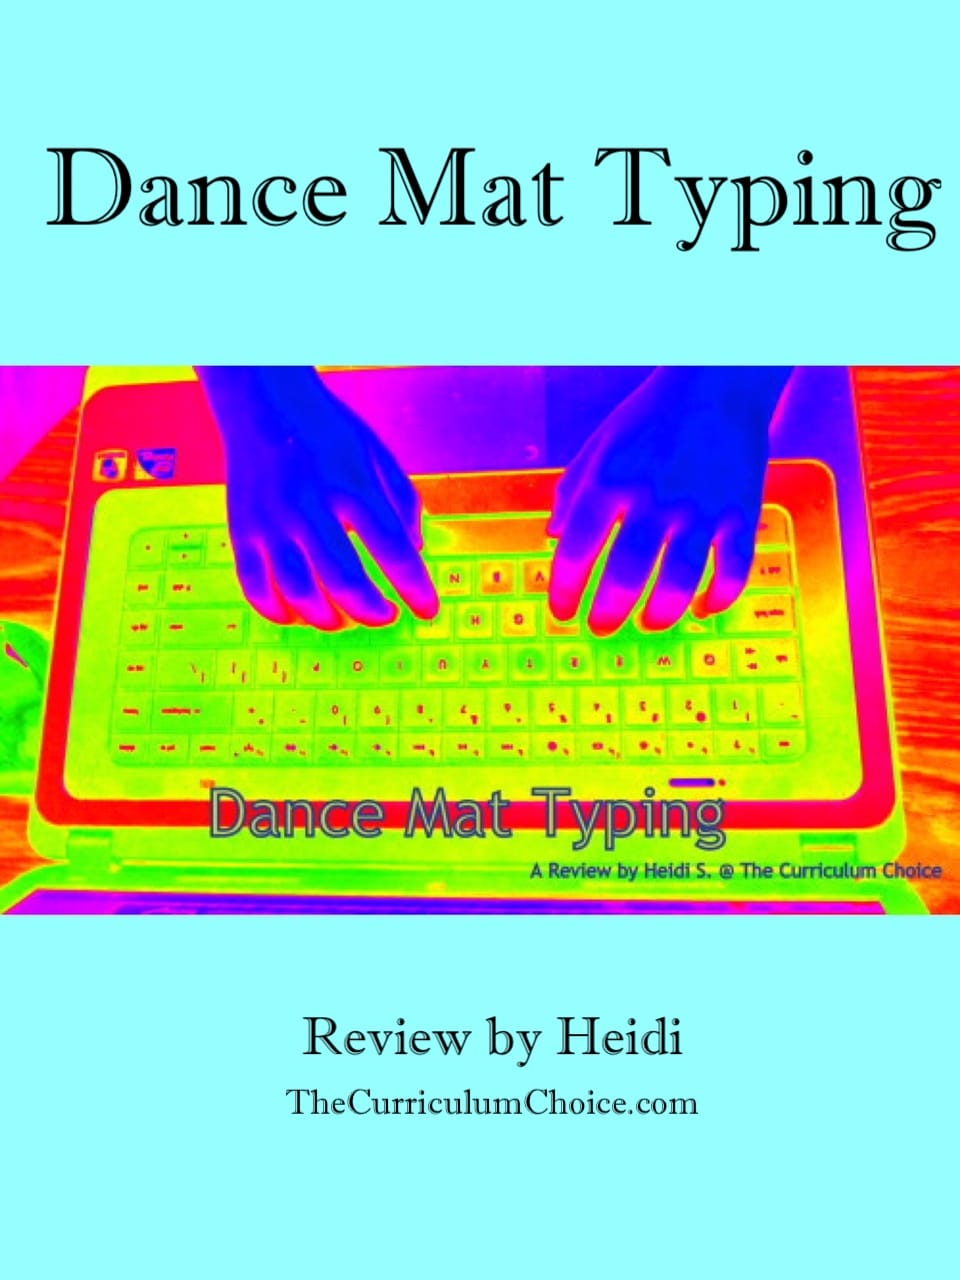 Dance Map Typing on